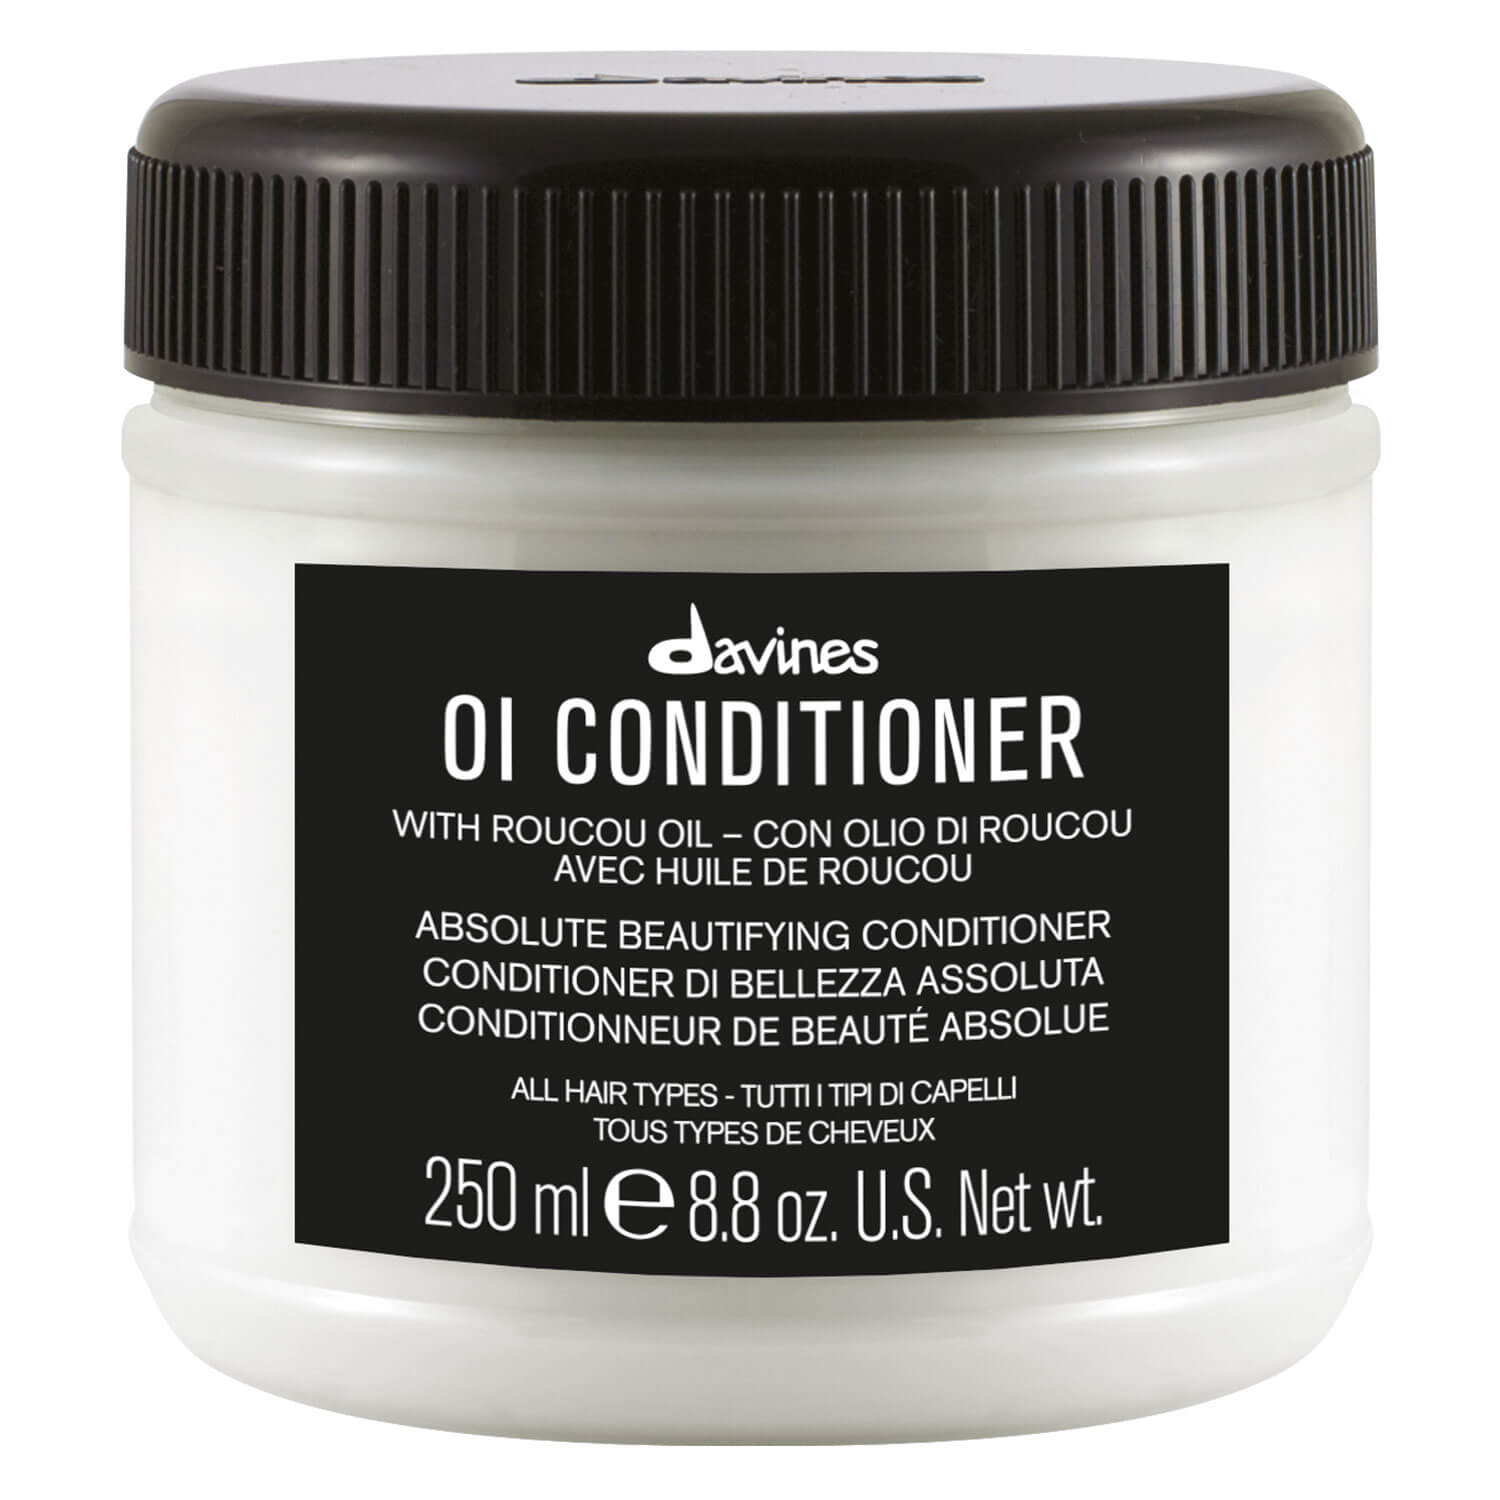 Oi - Absolute Beautifying Conditioner